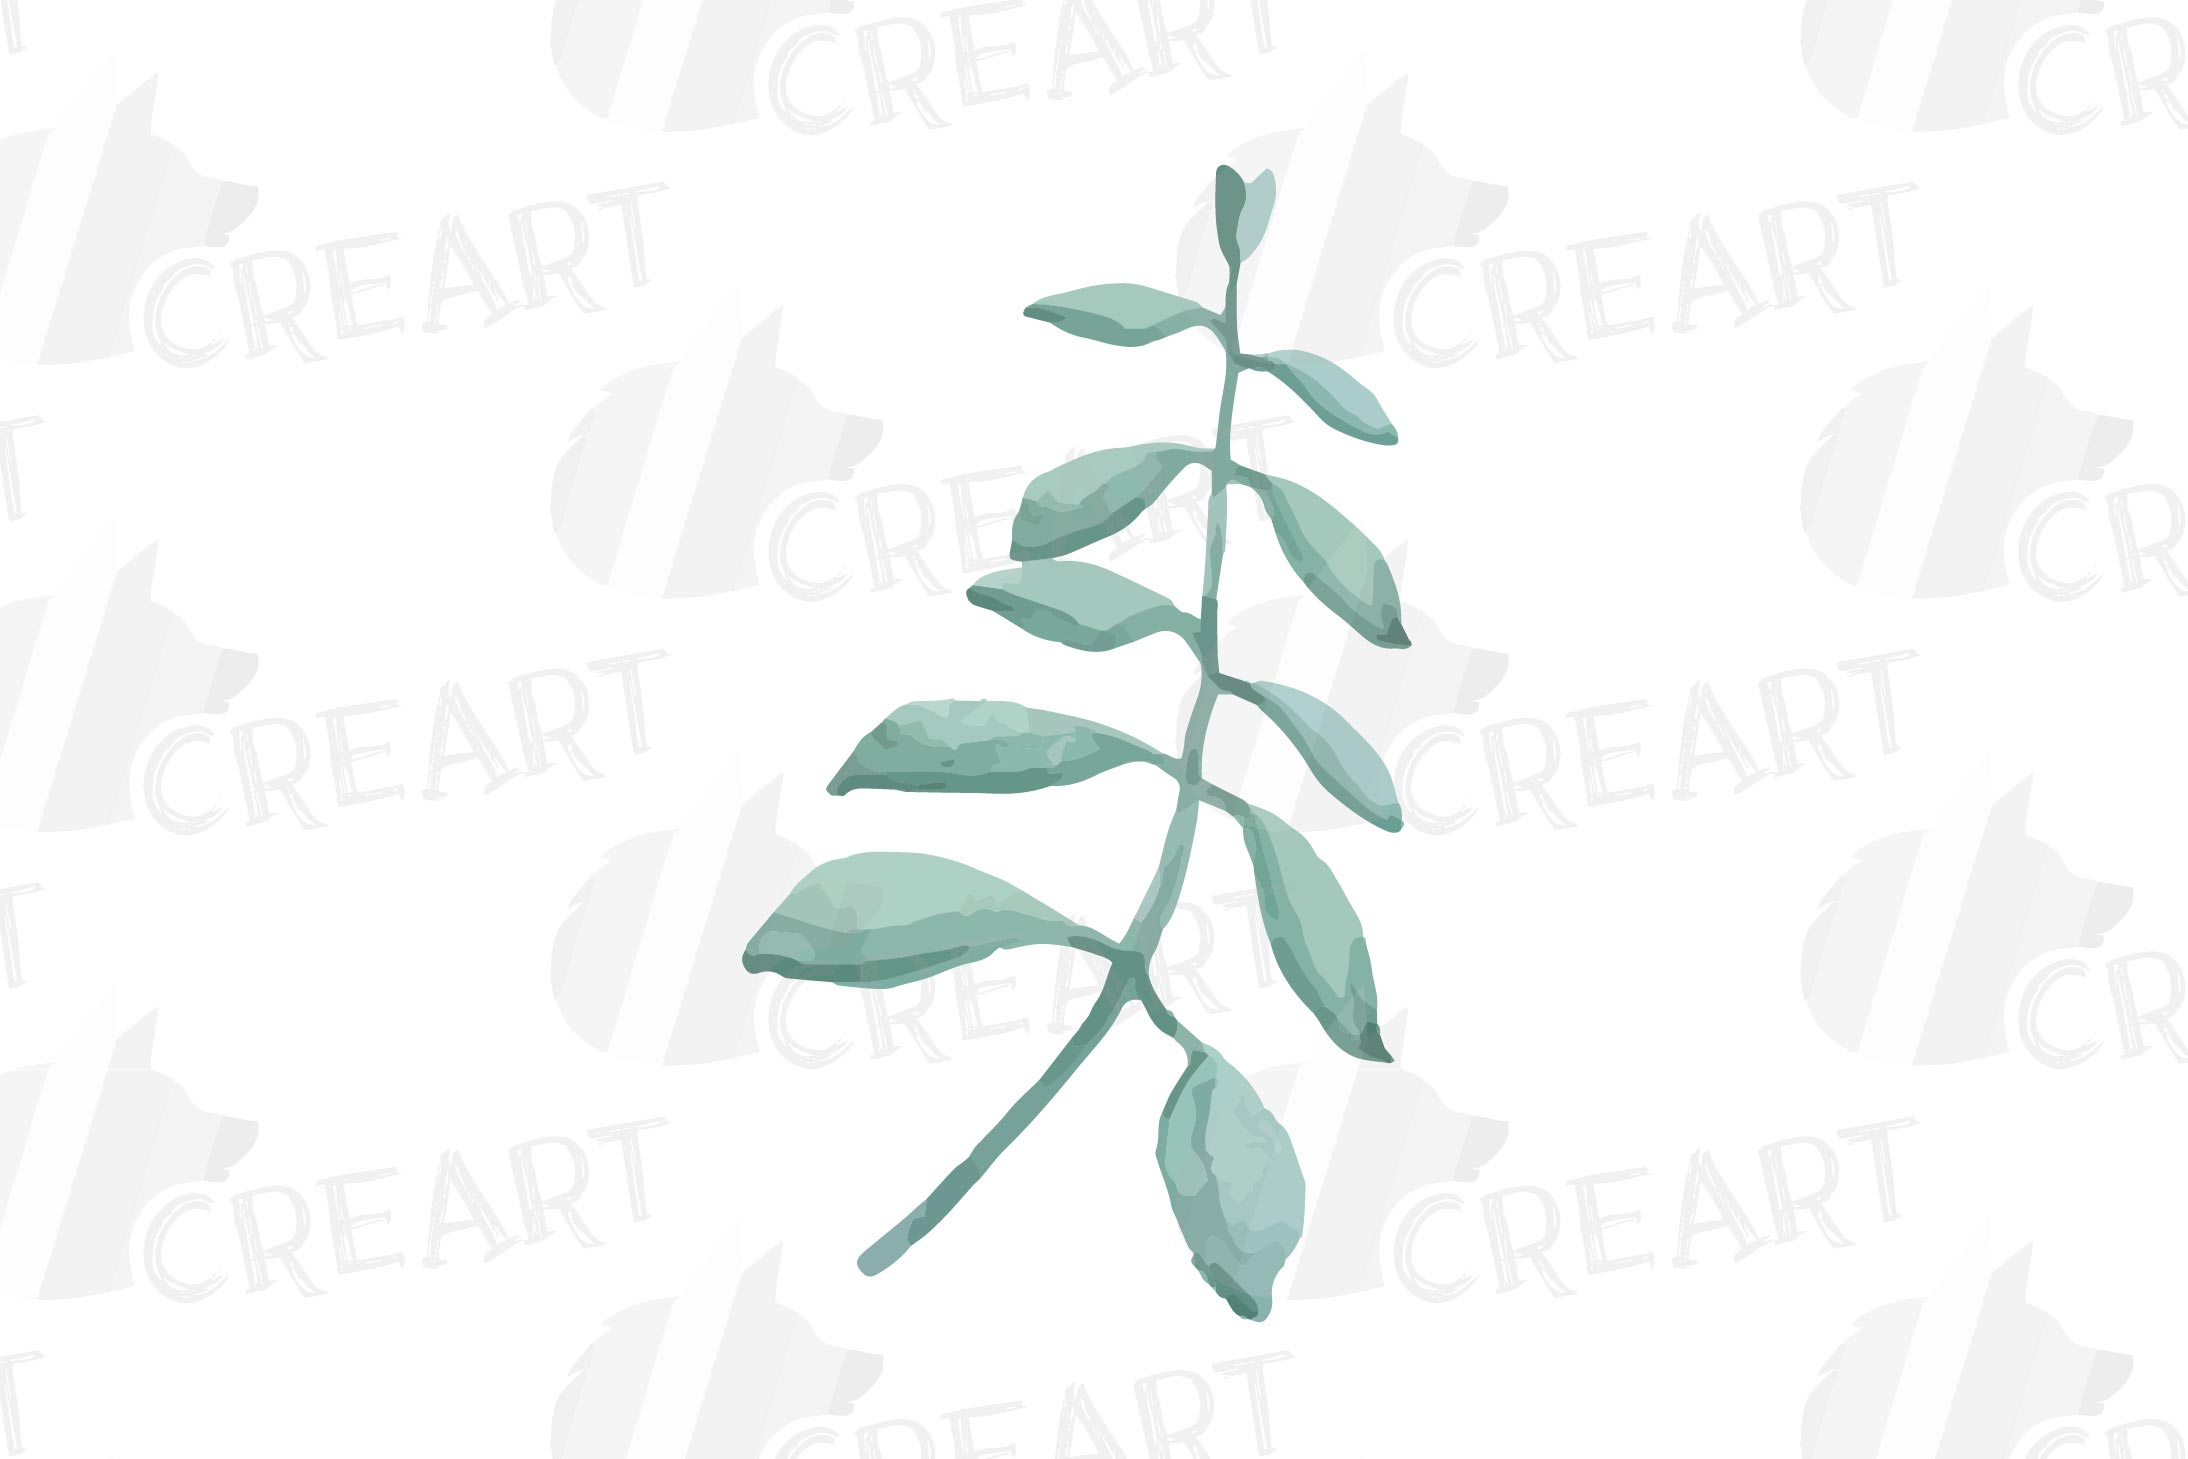 Cotton bolls and fir branch leafy autumn and winter decor example image 11